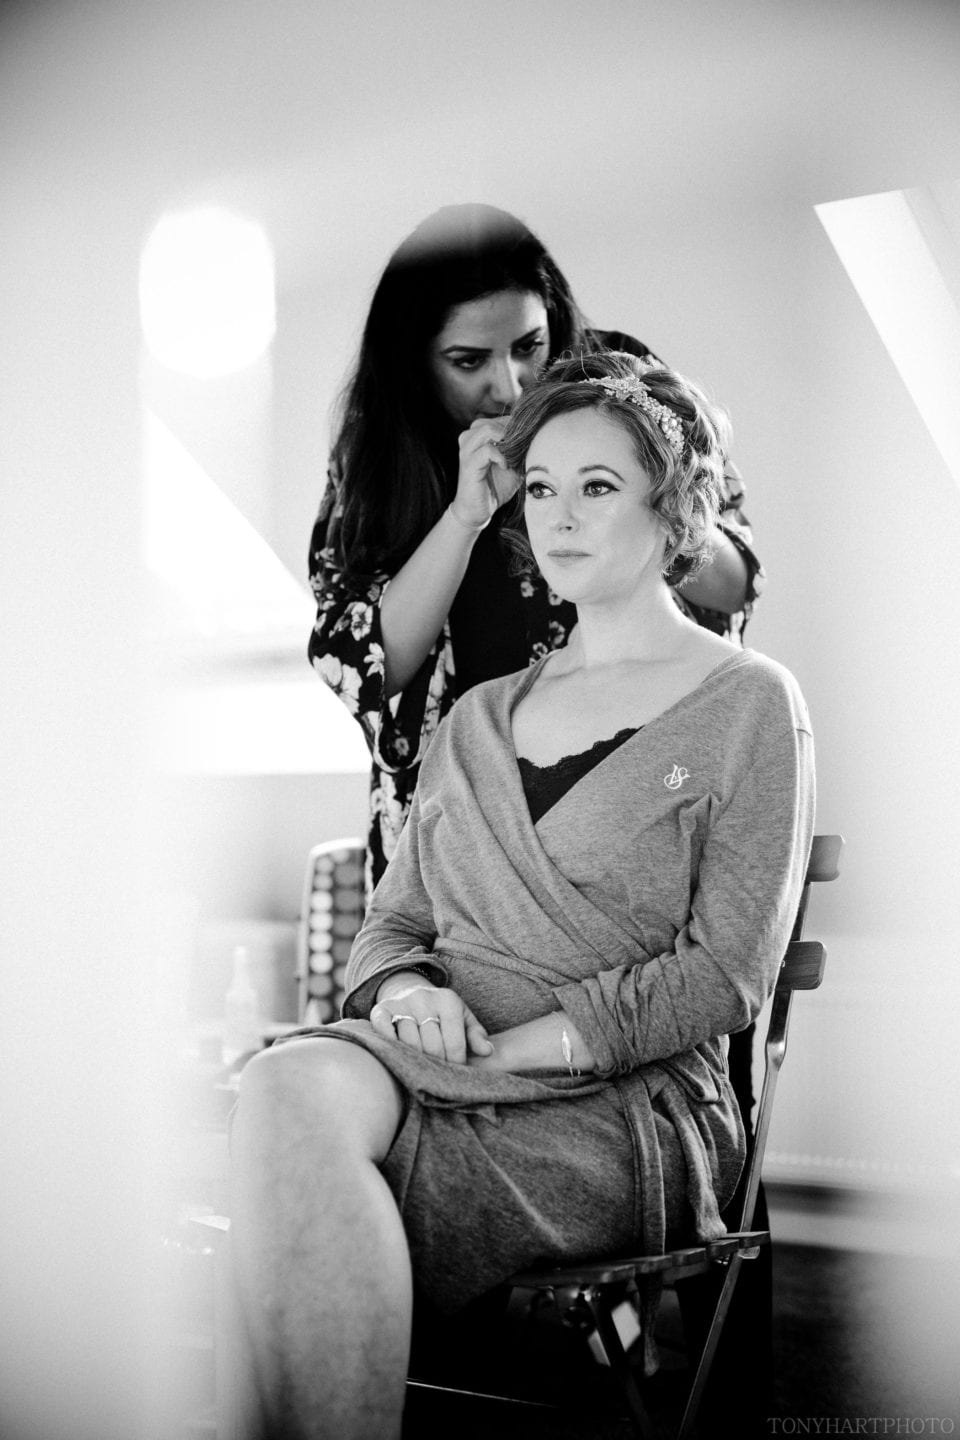 Emma in the Makeup Chair